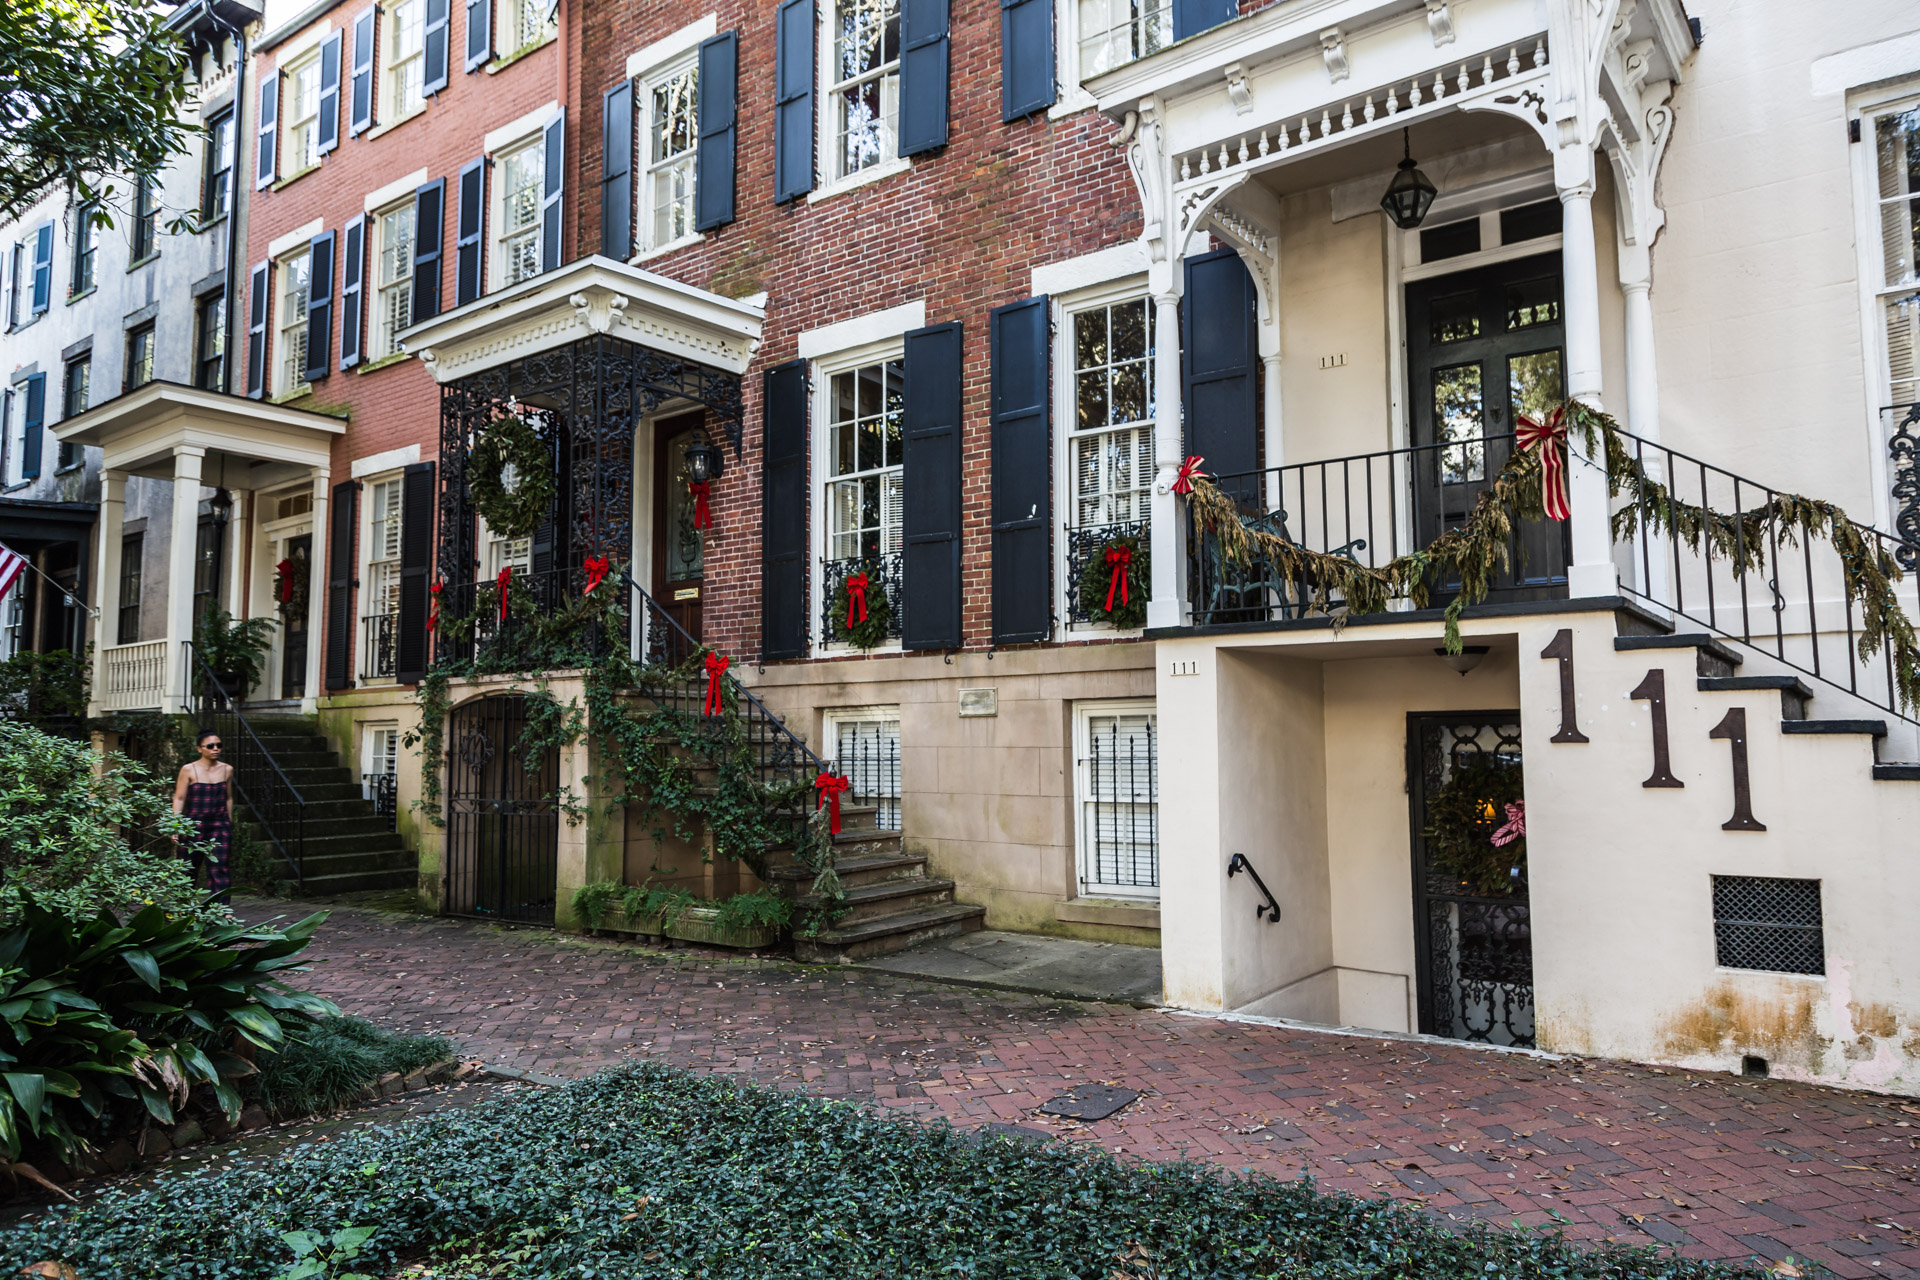 Getting To Know Savannah In One Street